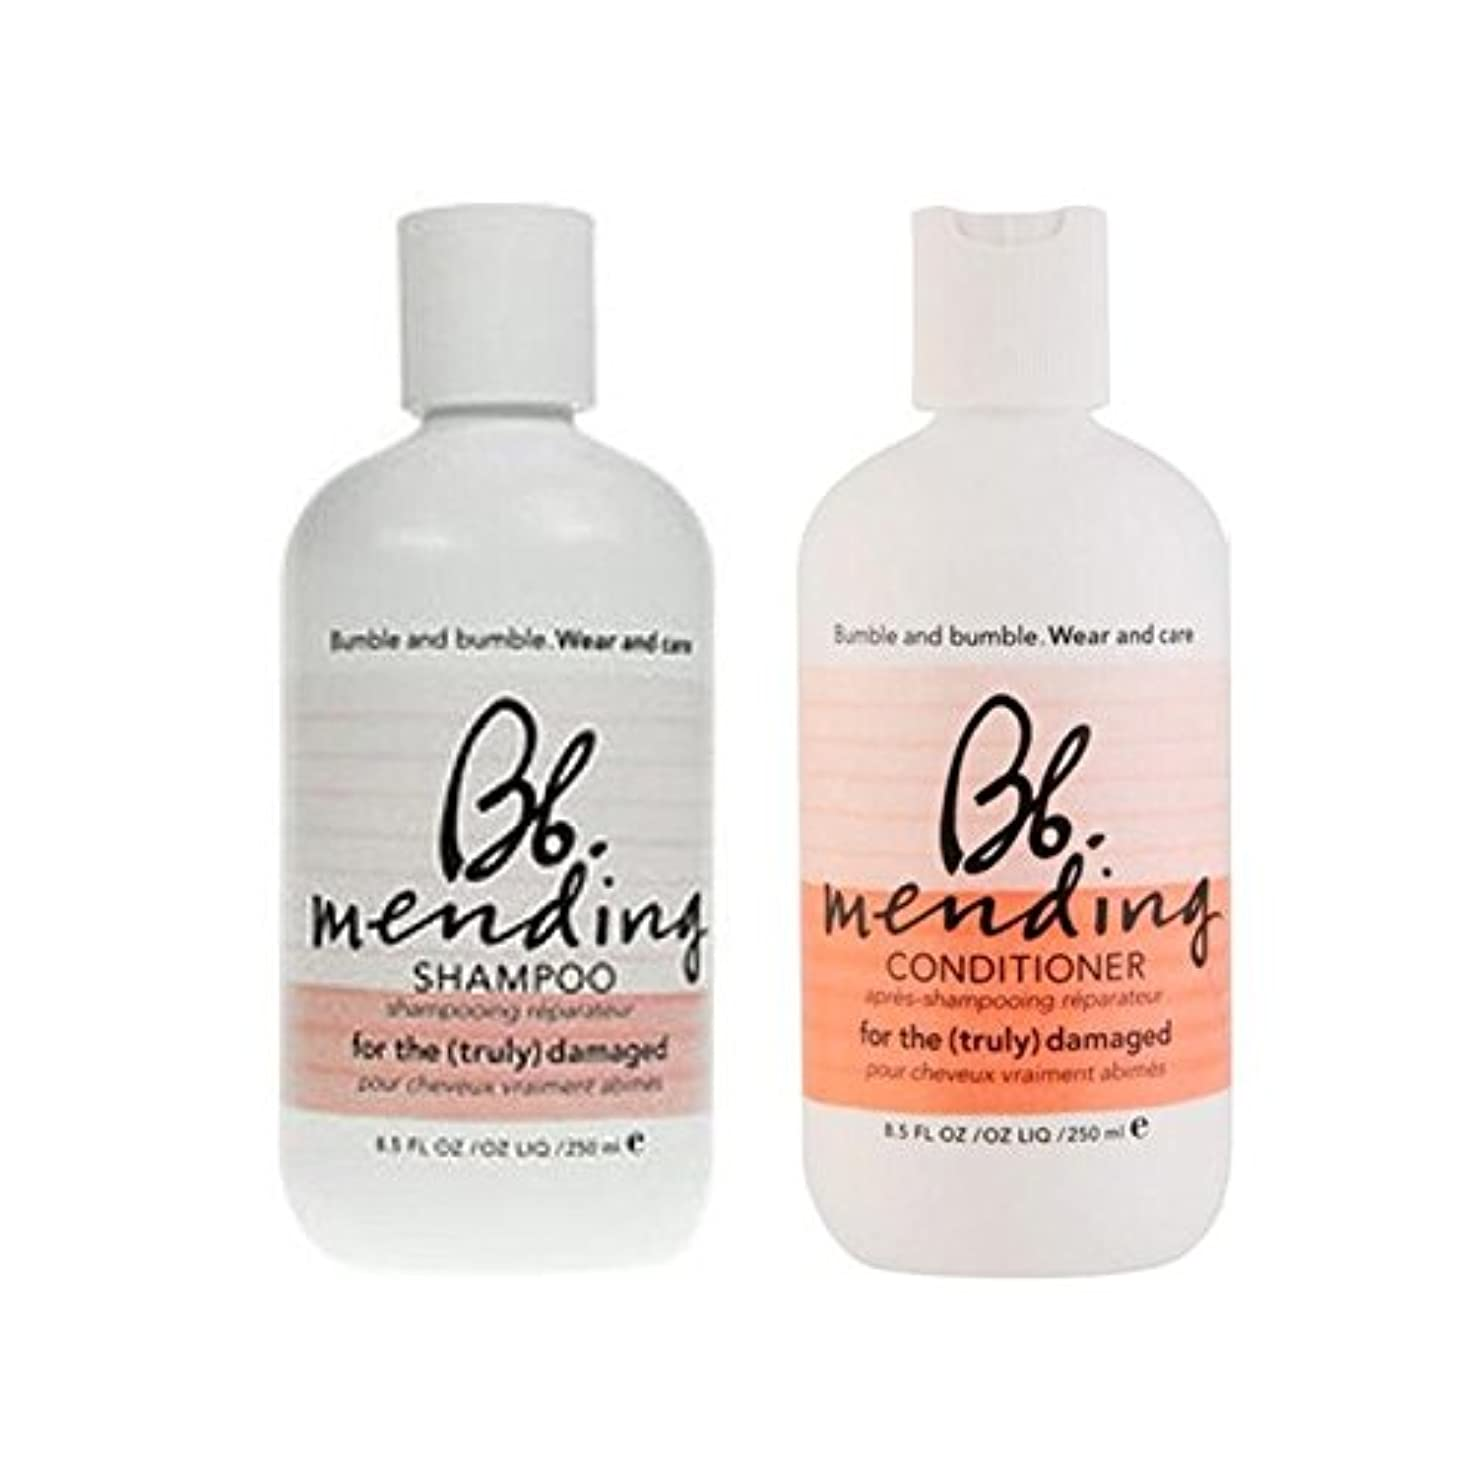 Bb Wear And Care Mending Duo- Shampoo And Conditioner (Pack of 6) - 着用し、-シャンプーとコンディショナーを補修ケア x6 [並行輸入品]